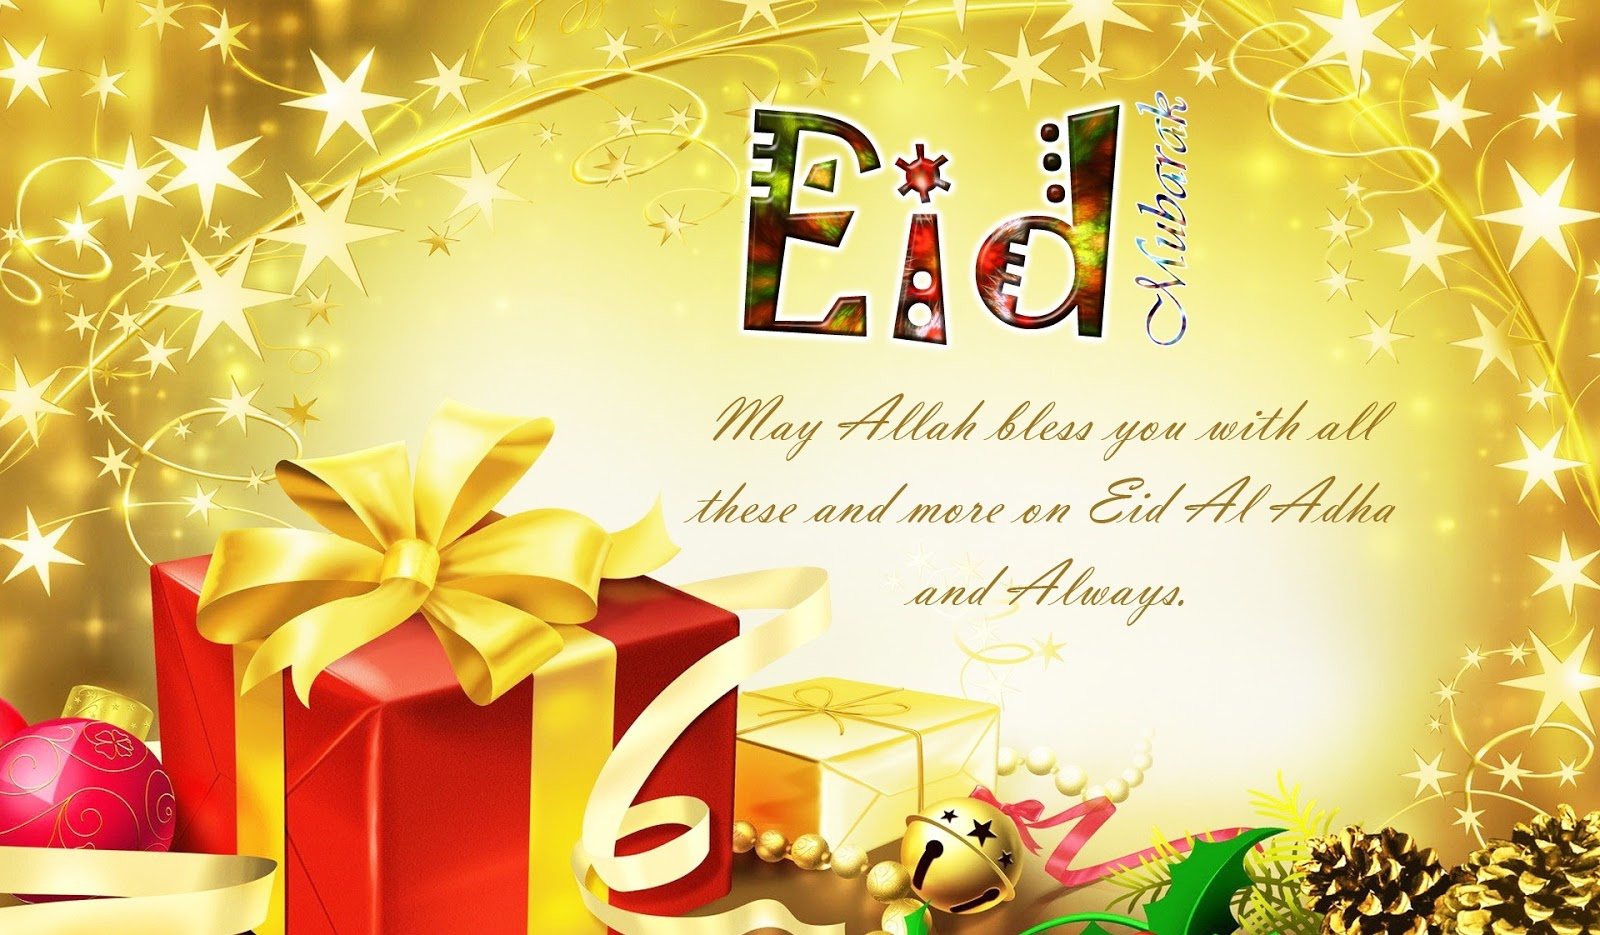 Eid Mubarak Cards Free Download Gifts For Happy Eid Cards For Free